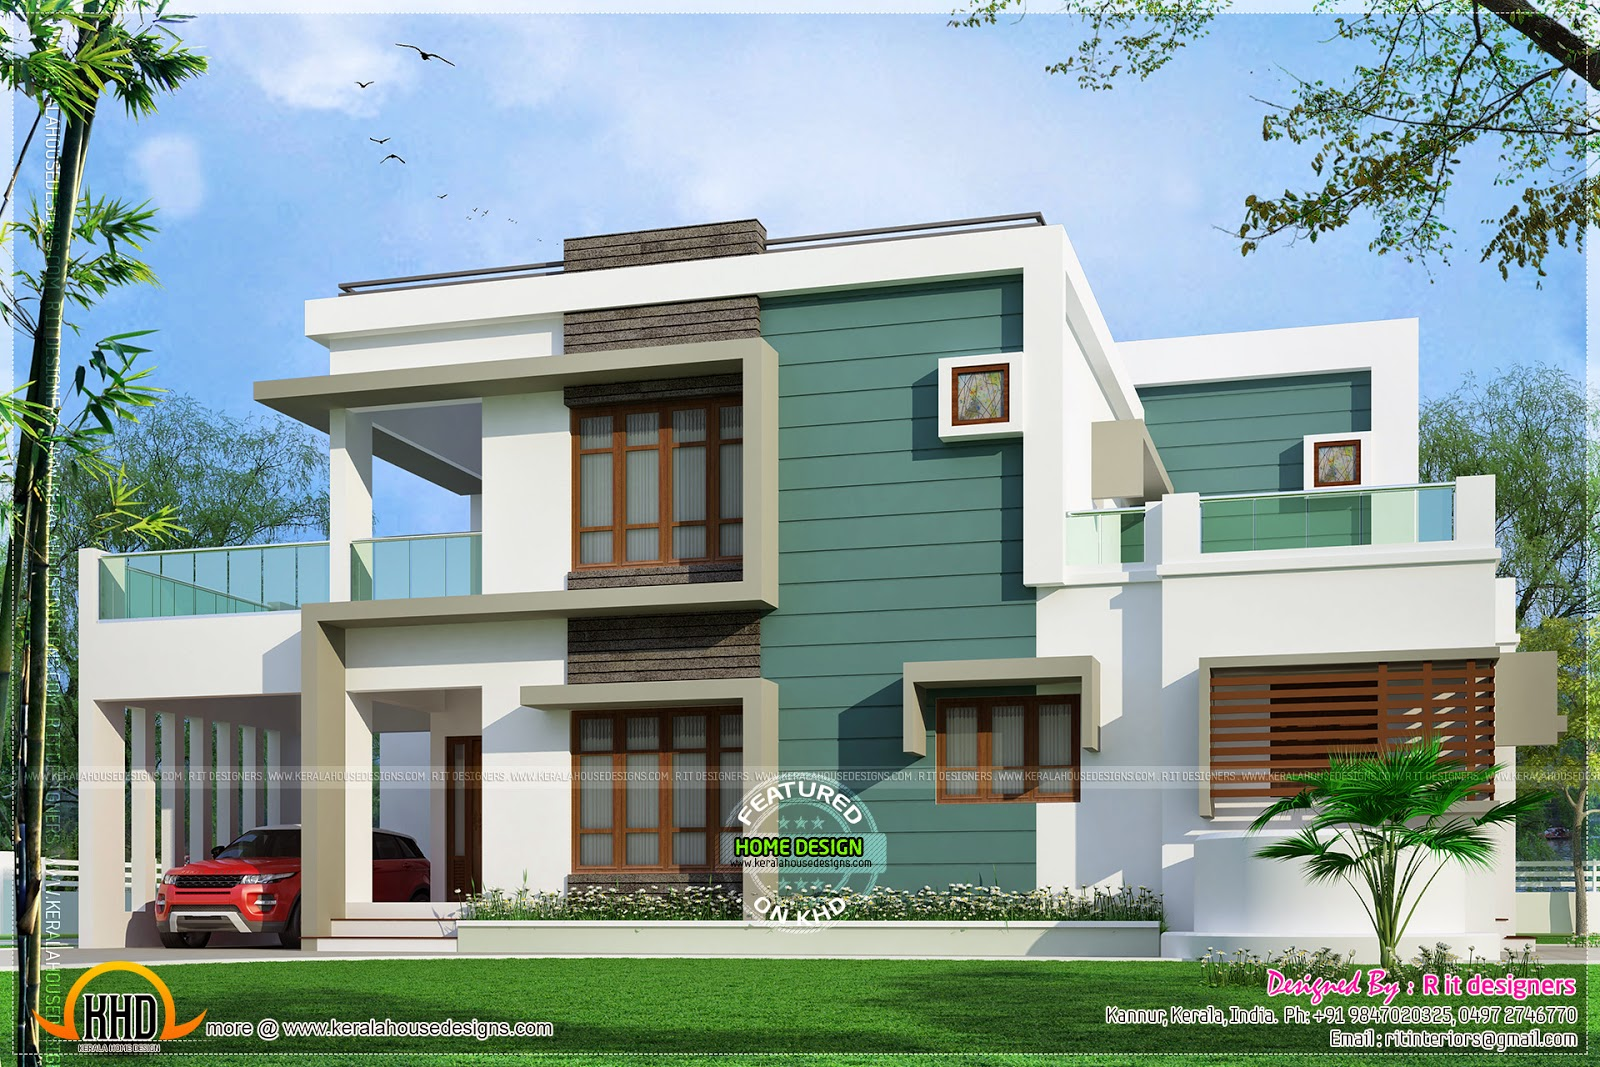 Kannur home design kerala home design and floor plans for Blueprint home plans